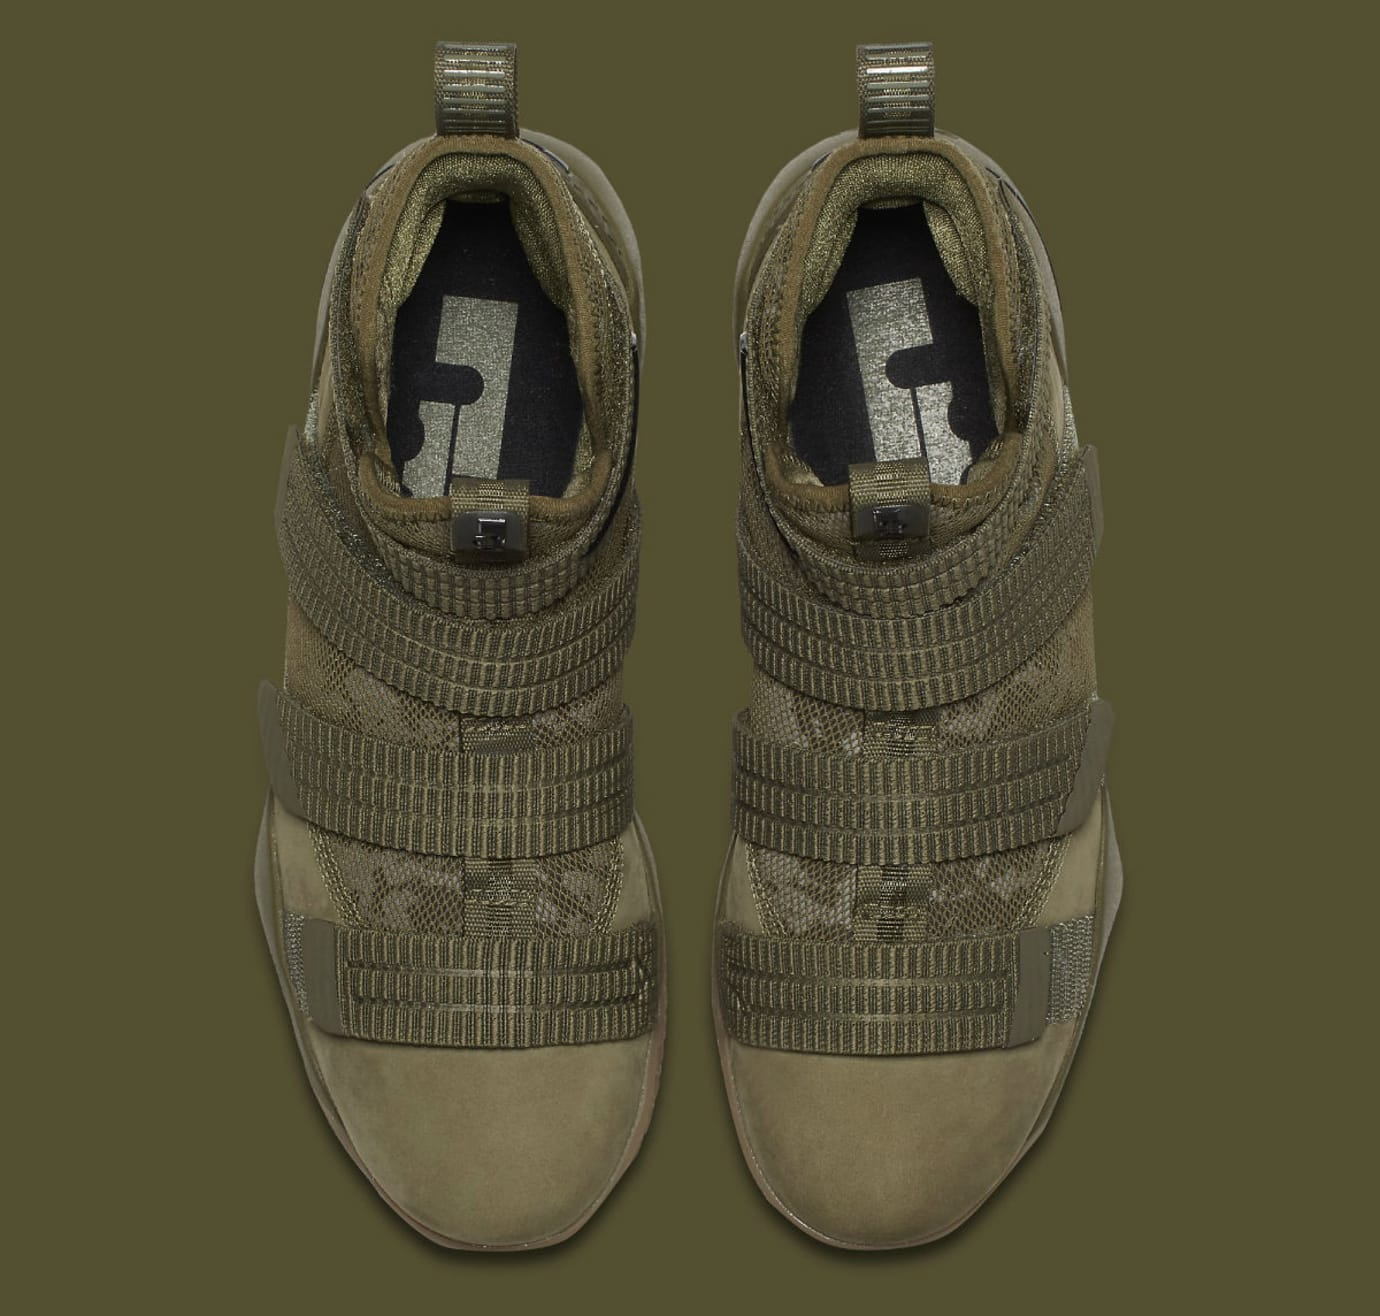 070df351b0d Nike LeBron Soldier 11 SFG Olive Release Date Top 897646-200